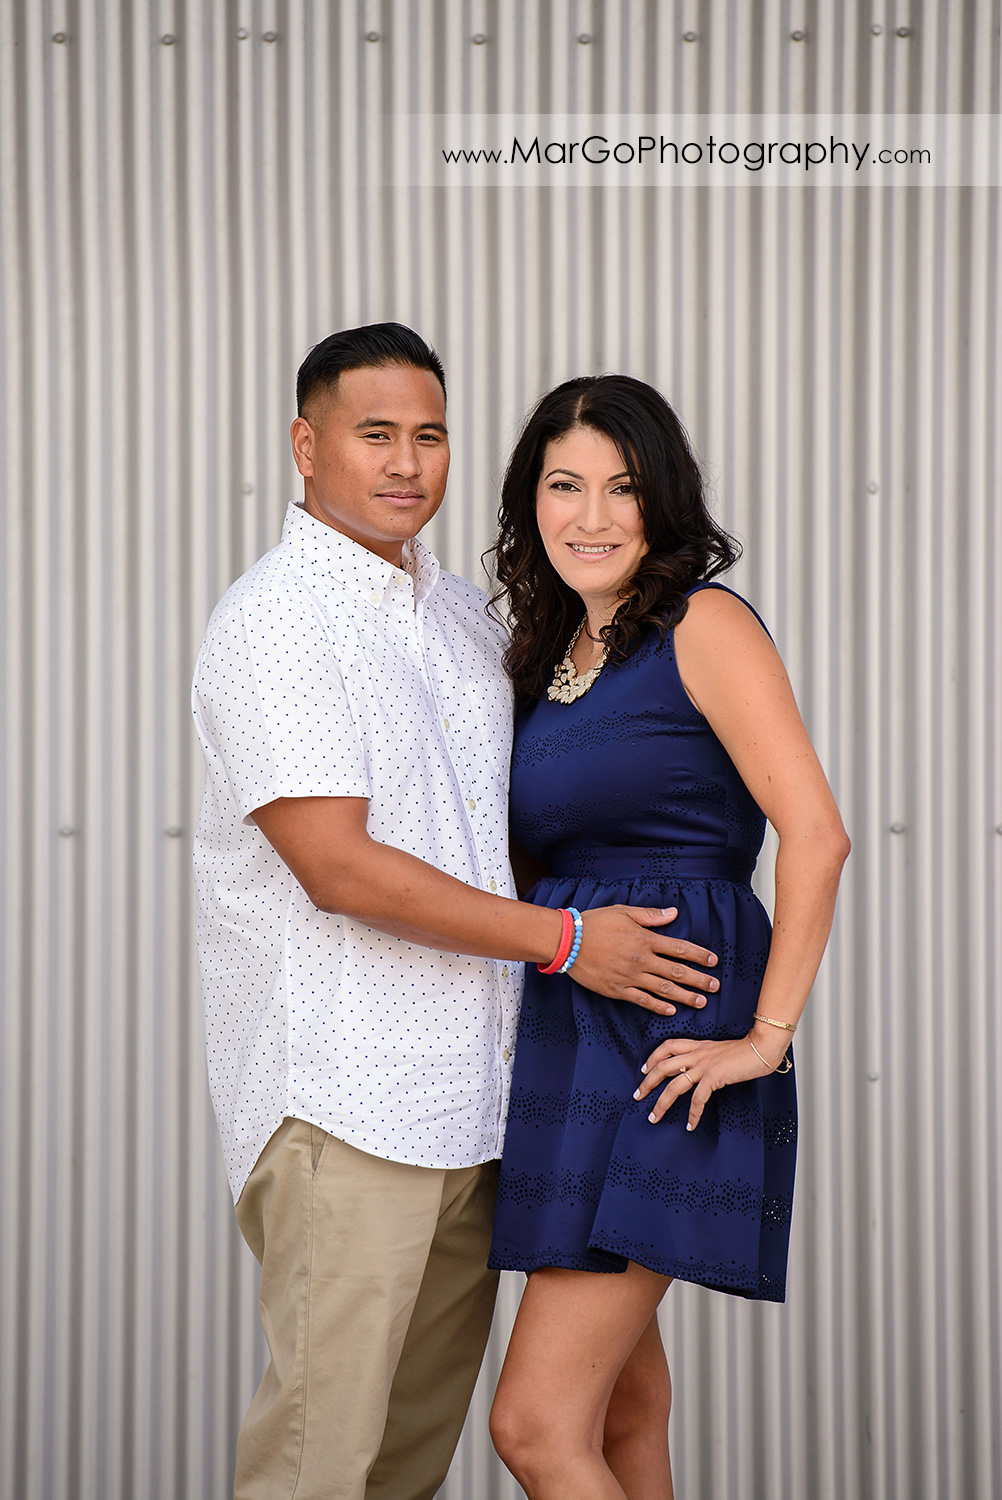 portrait of woman in blue dress and man in white shirt holding hands looking into camera on the metal wall during engagement session at San Jose San Pedro Square Market